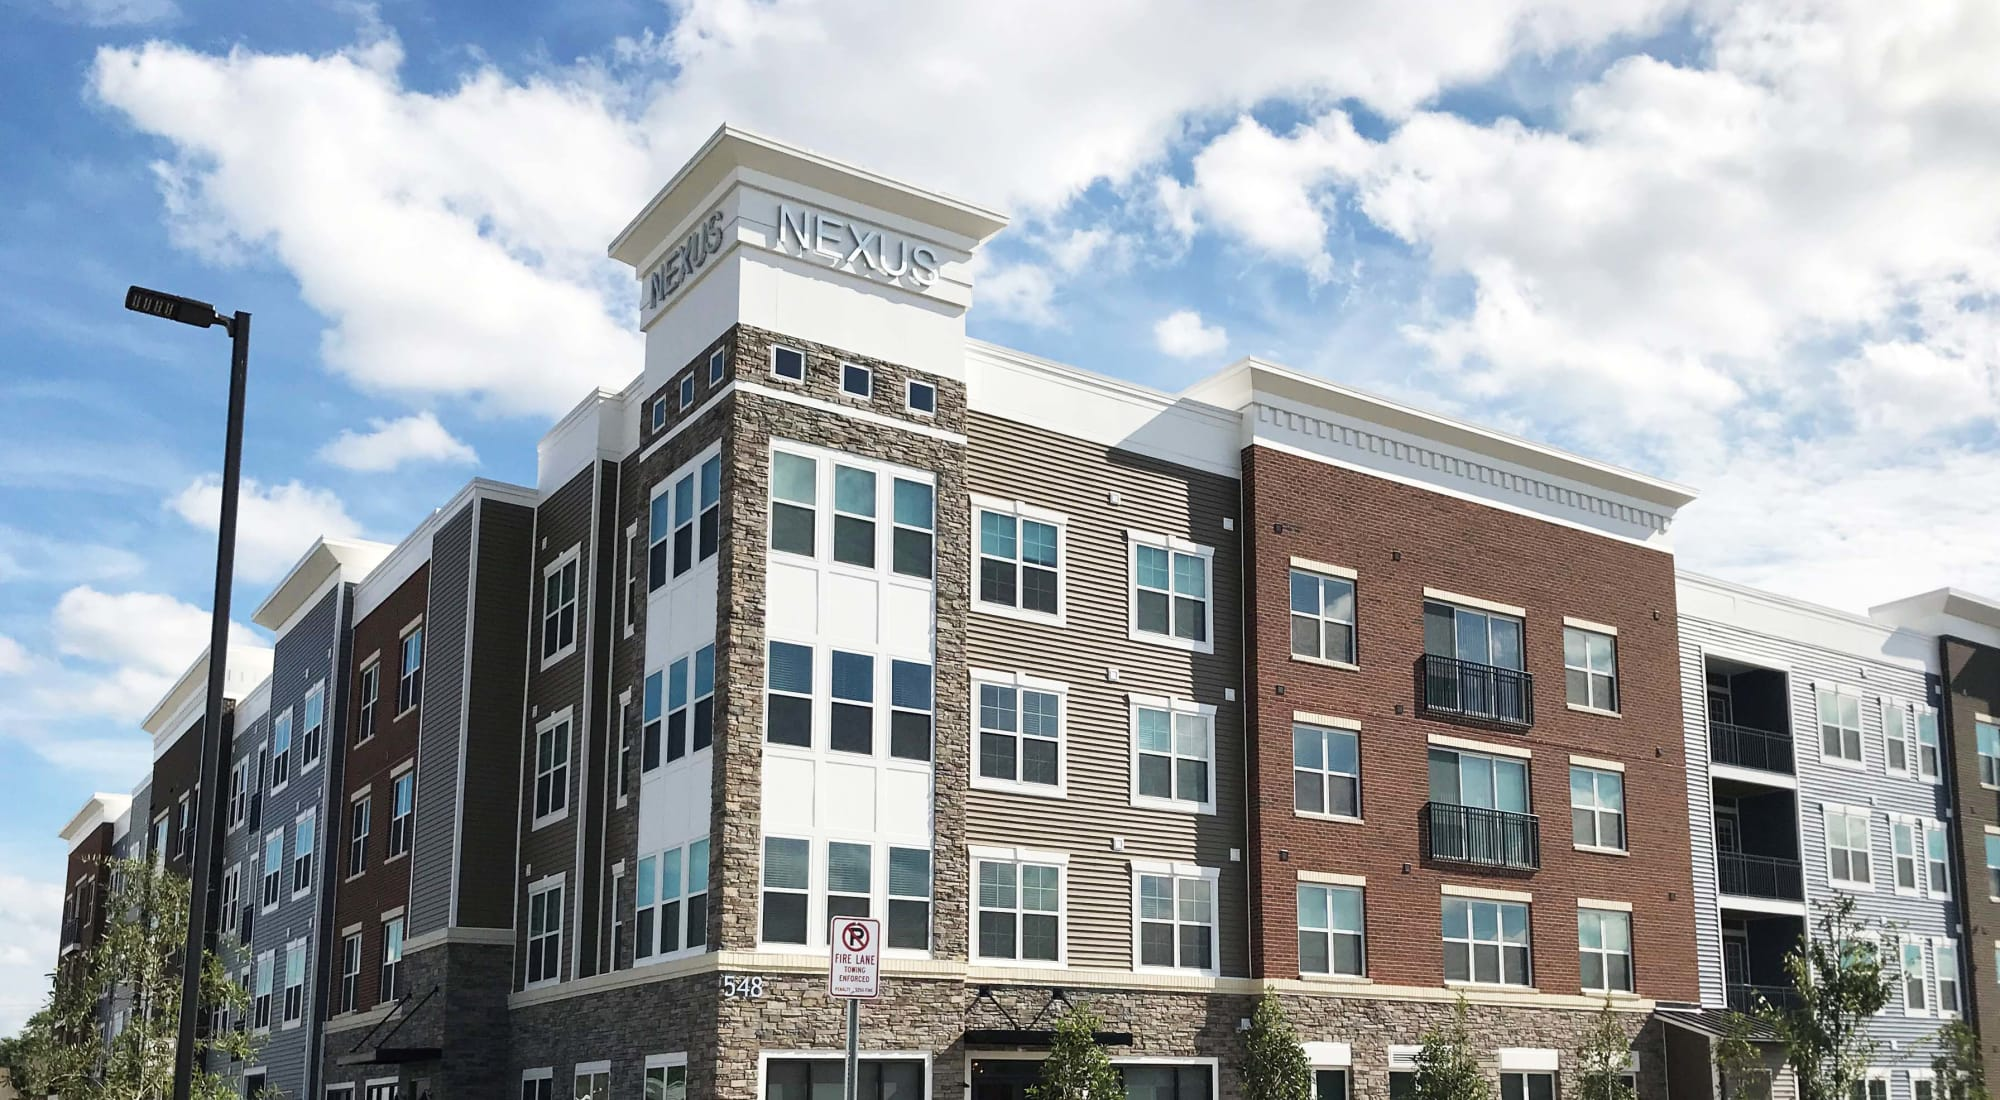 Apartments at Nexus Luxury Apartments in Virginia Beach, Virginia